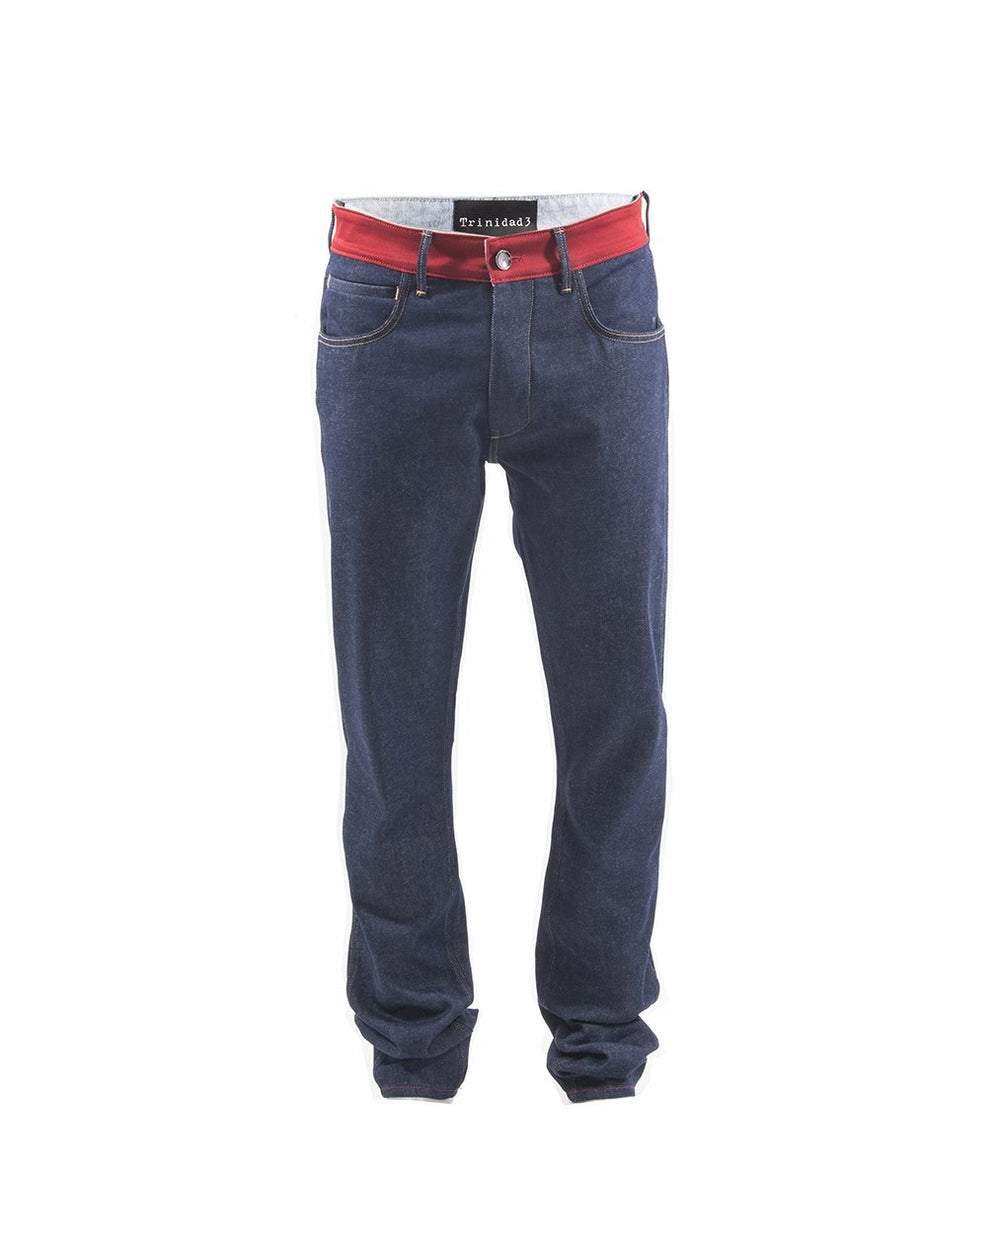 Trinidad3 Johnson Raw Denim Jeans - The Gathering Shops